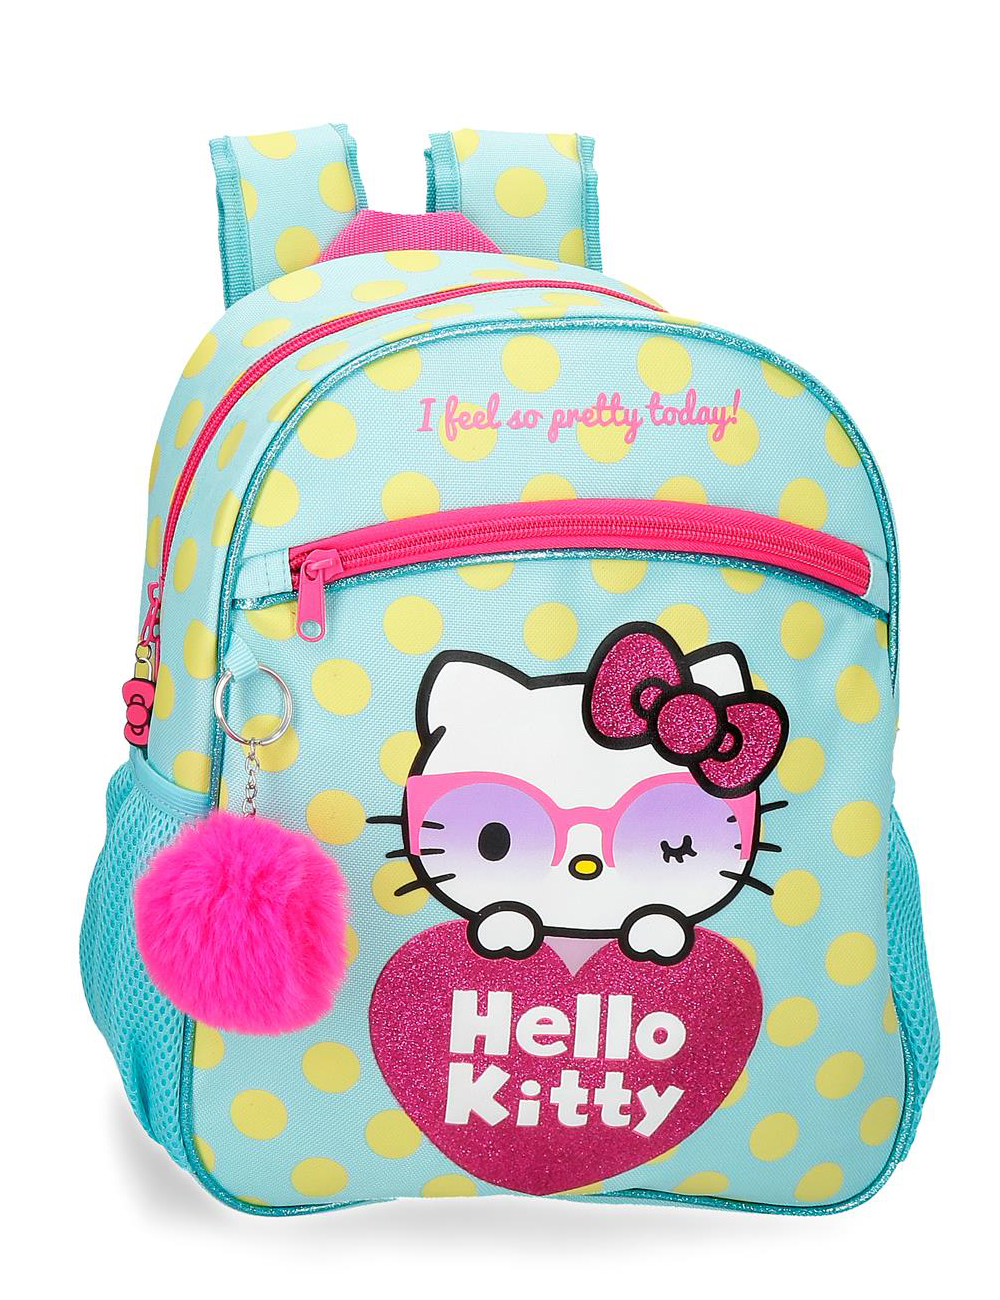 4262221 Mochila 33cm Hello Kitty Pretty Glasses